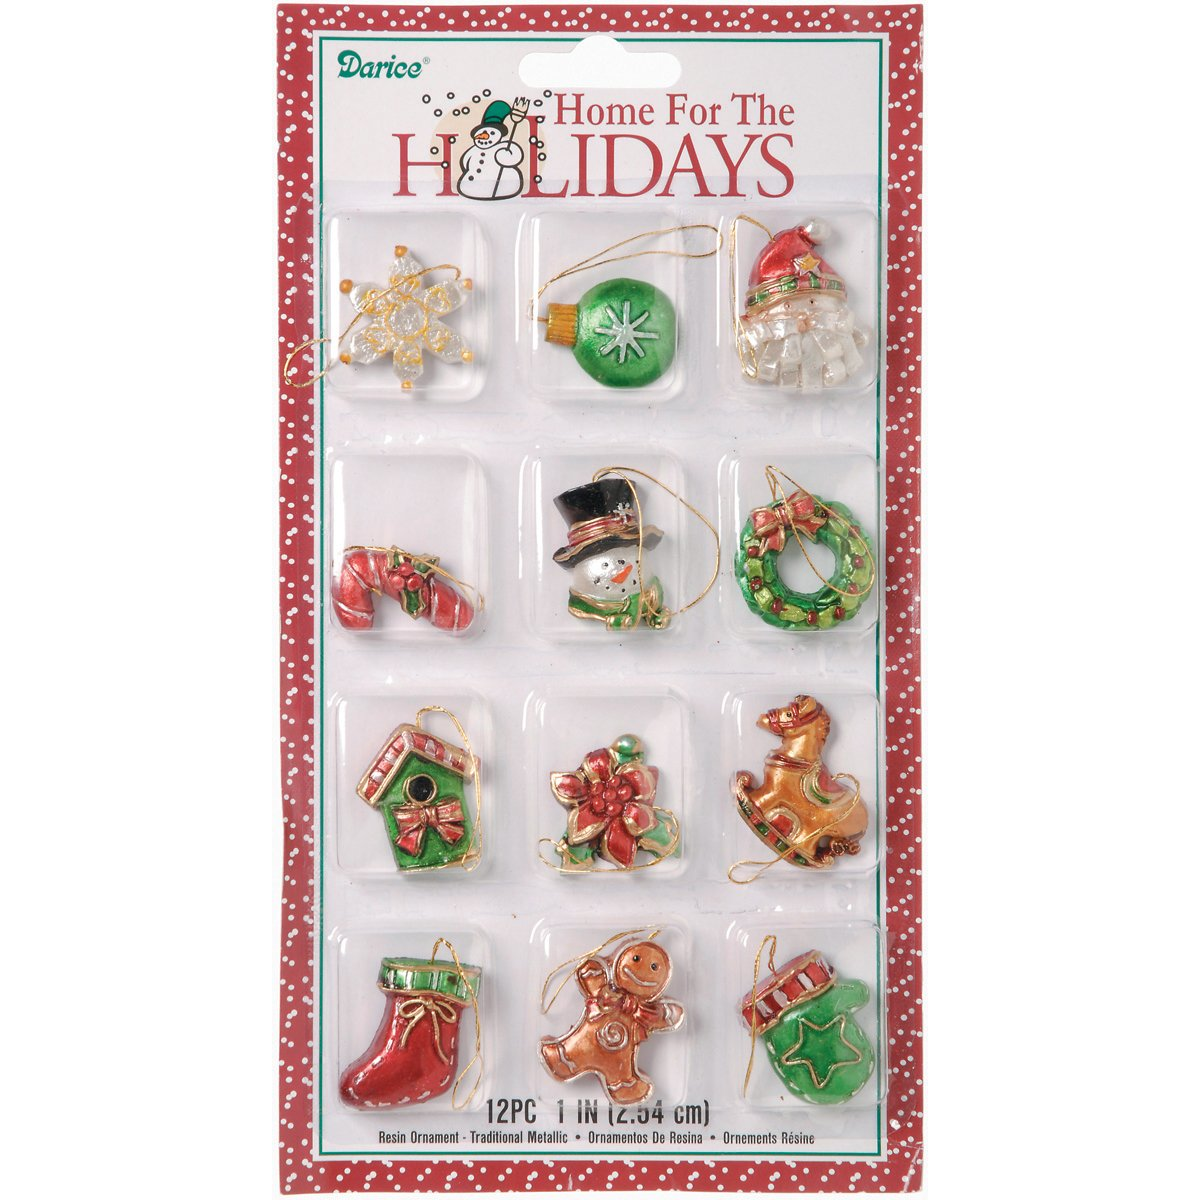 Darice 2463-52 Mini Resin Ornaments 1-1.5 12/Pkg